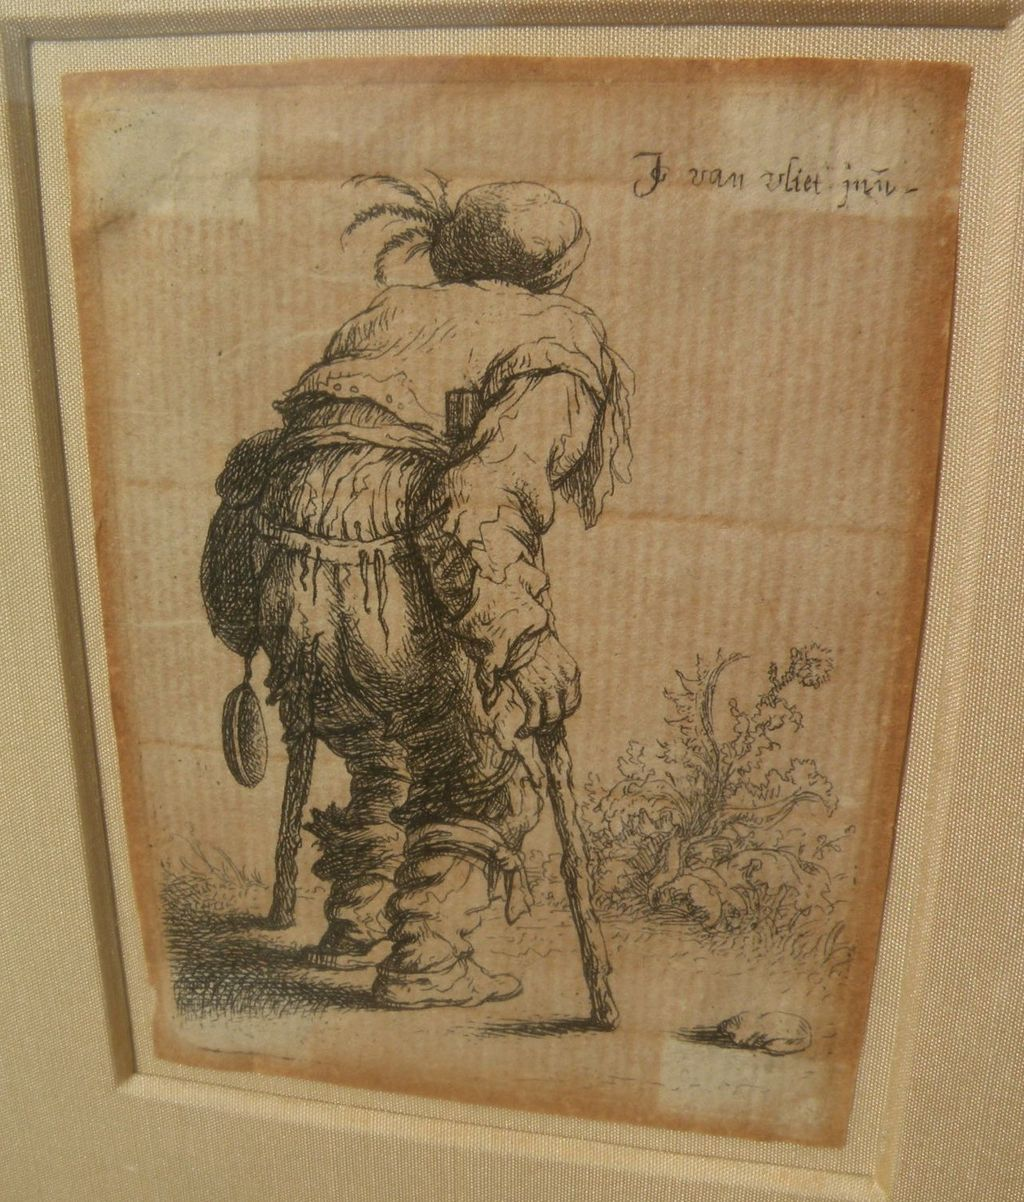 "JAN GILLISZ VAN VLIET (1605-1668) original etching ""Beggar on Two Crutches"" circa 1635"